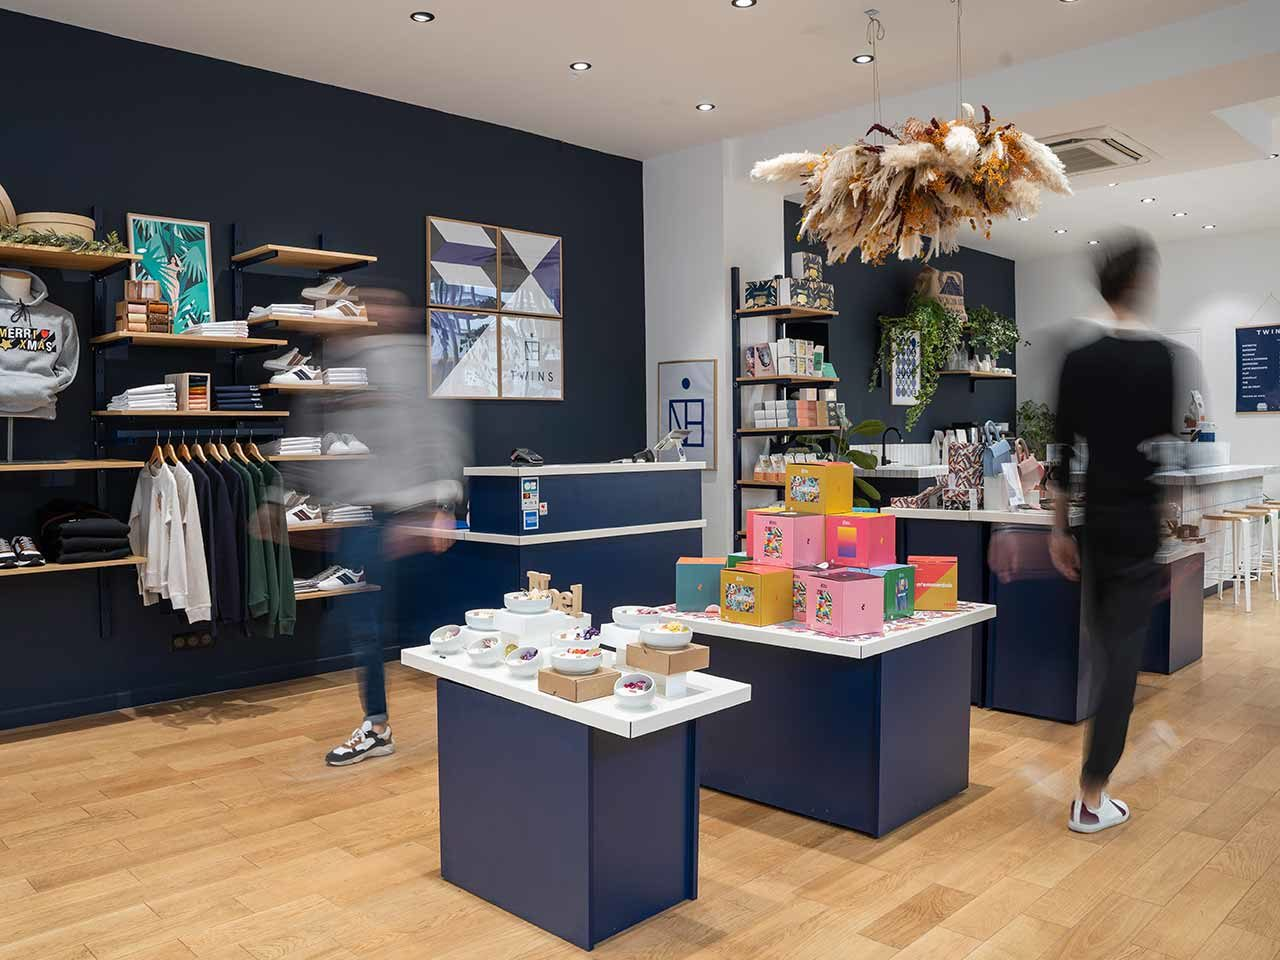 Twins Concept store